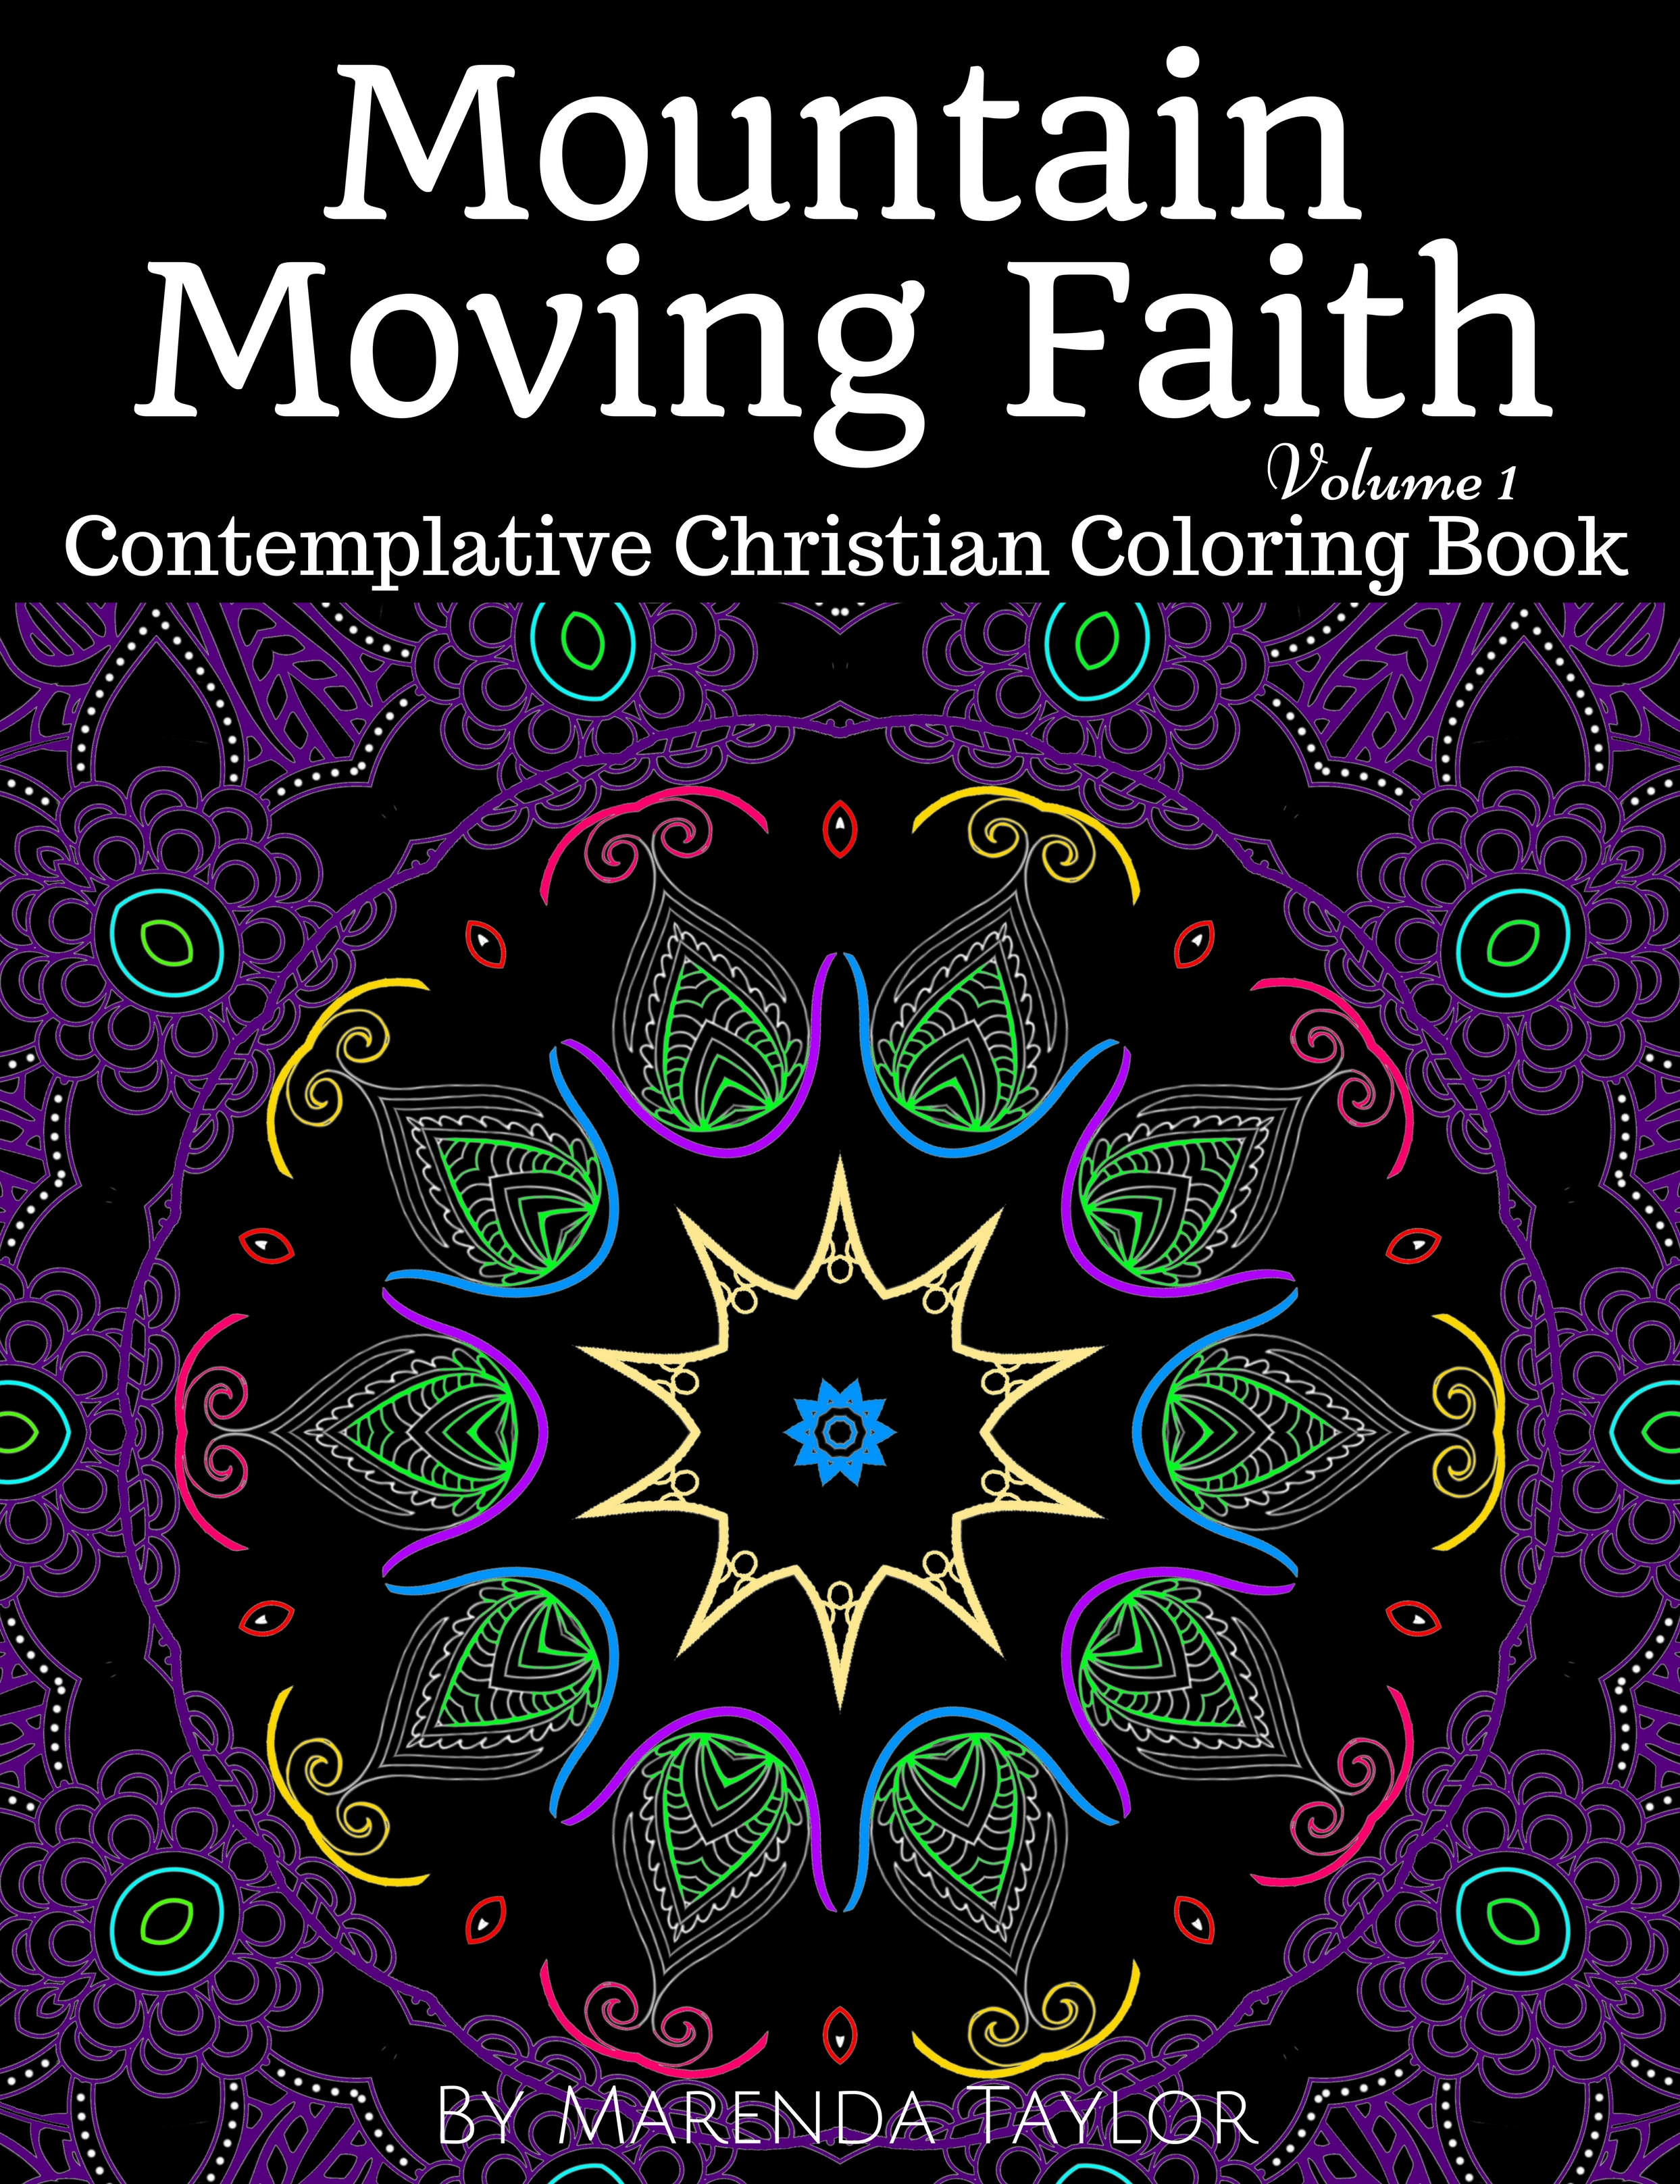 Mountain Moving Faith Volume 1: Contemplative Christian Coloring Book